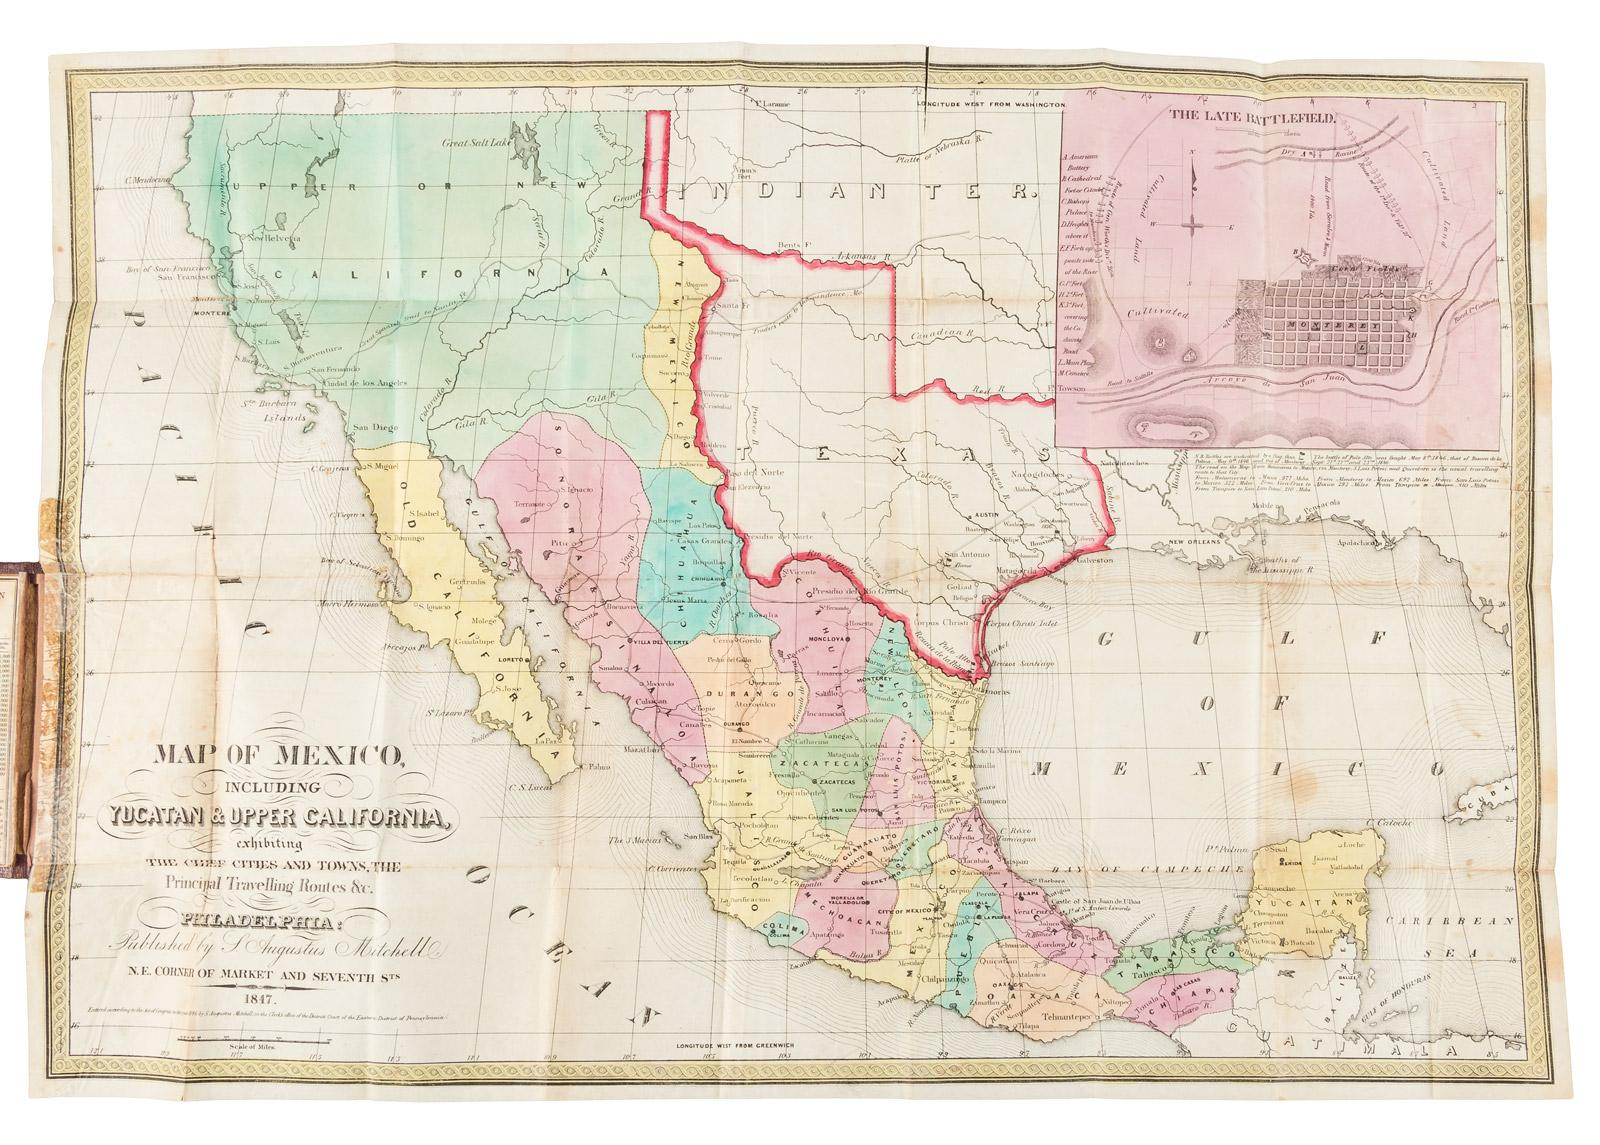 Map Of California Towns And Cities.Map Of Mexico Including Yucatan Upper California Exhibiting The